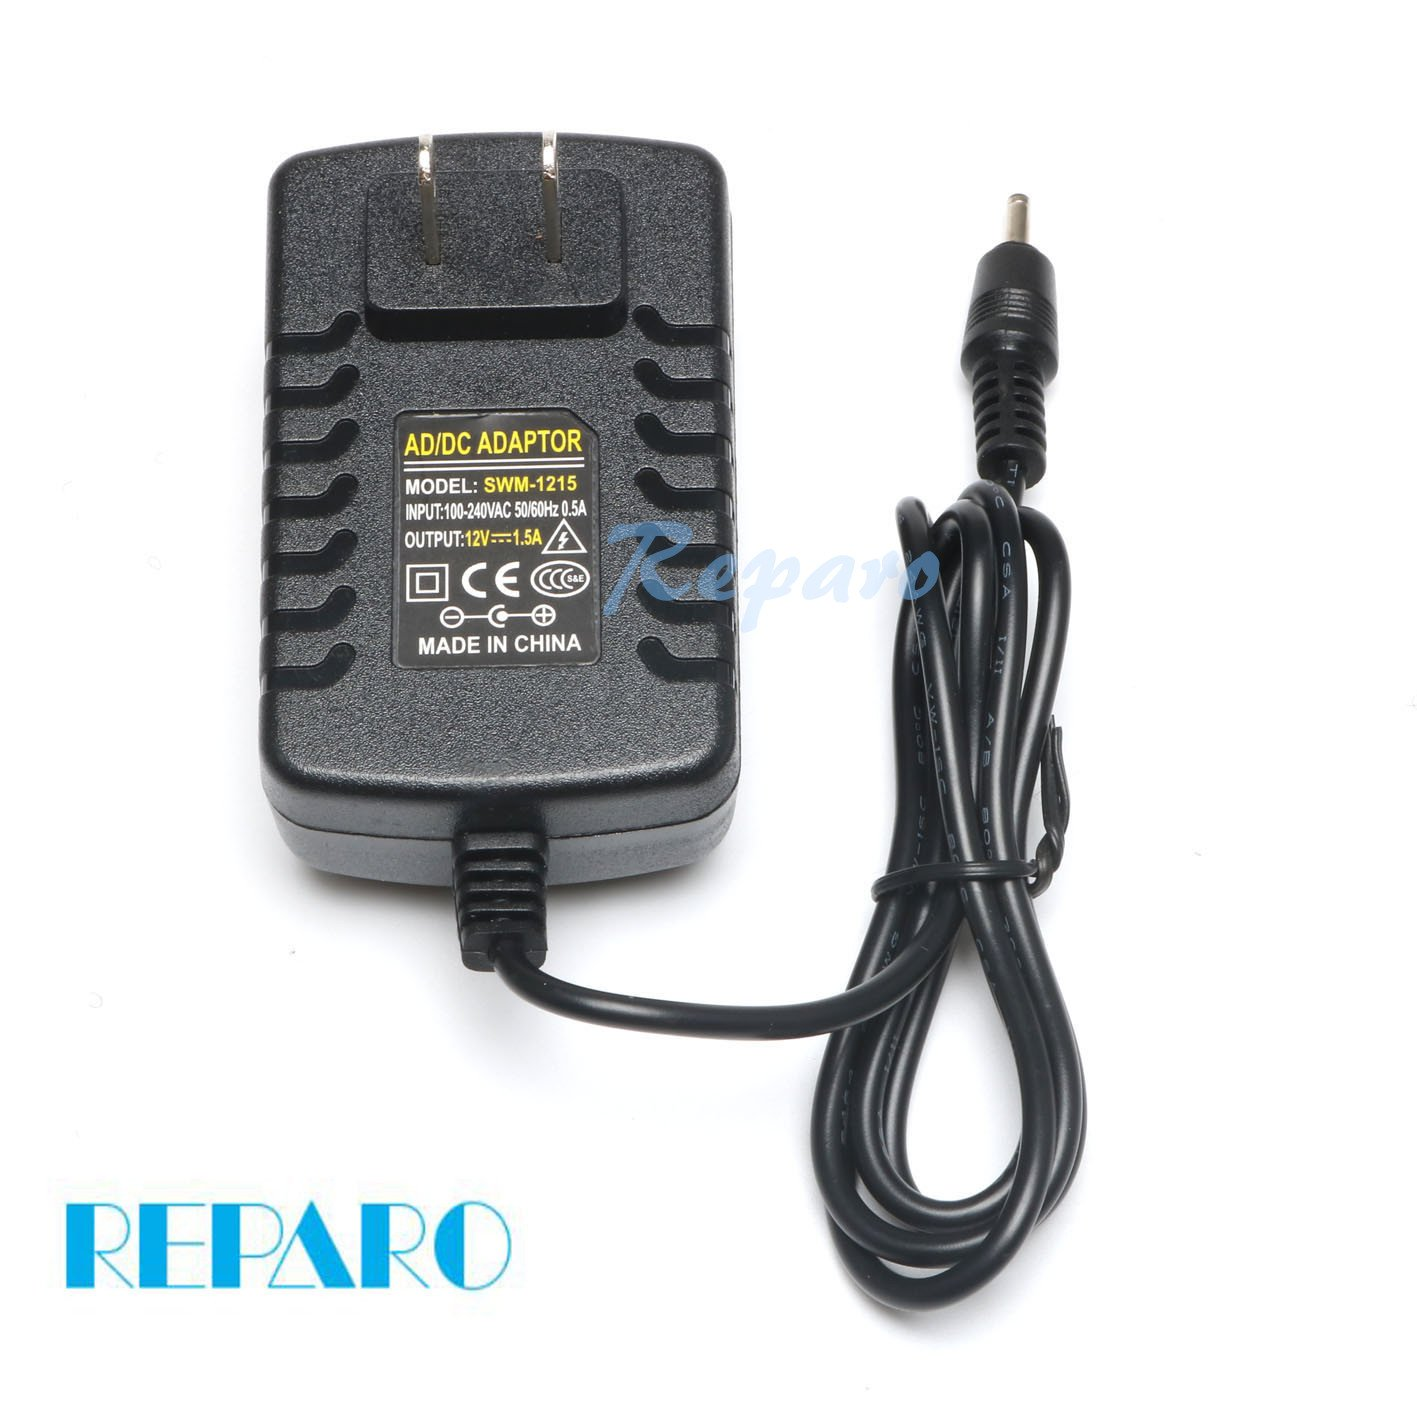 Reparo 12V AC AdapterWall Charger Home Powerfor Acer Aspire Switch SW5-012 SW5-015 SW5-011; Acer Iconia A100 A200 A210 A500 A501 W3 W3-810 Ak.018ap.040 Ak.018ap.027 ADP-18TB Lc.adt0a.024